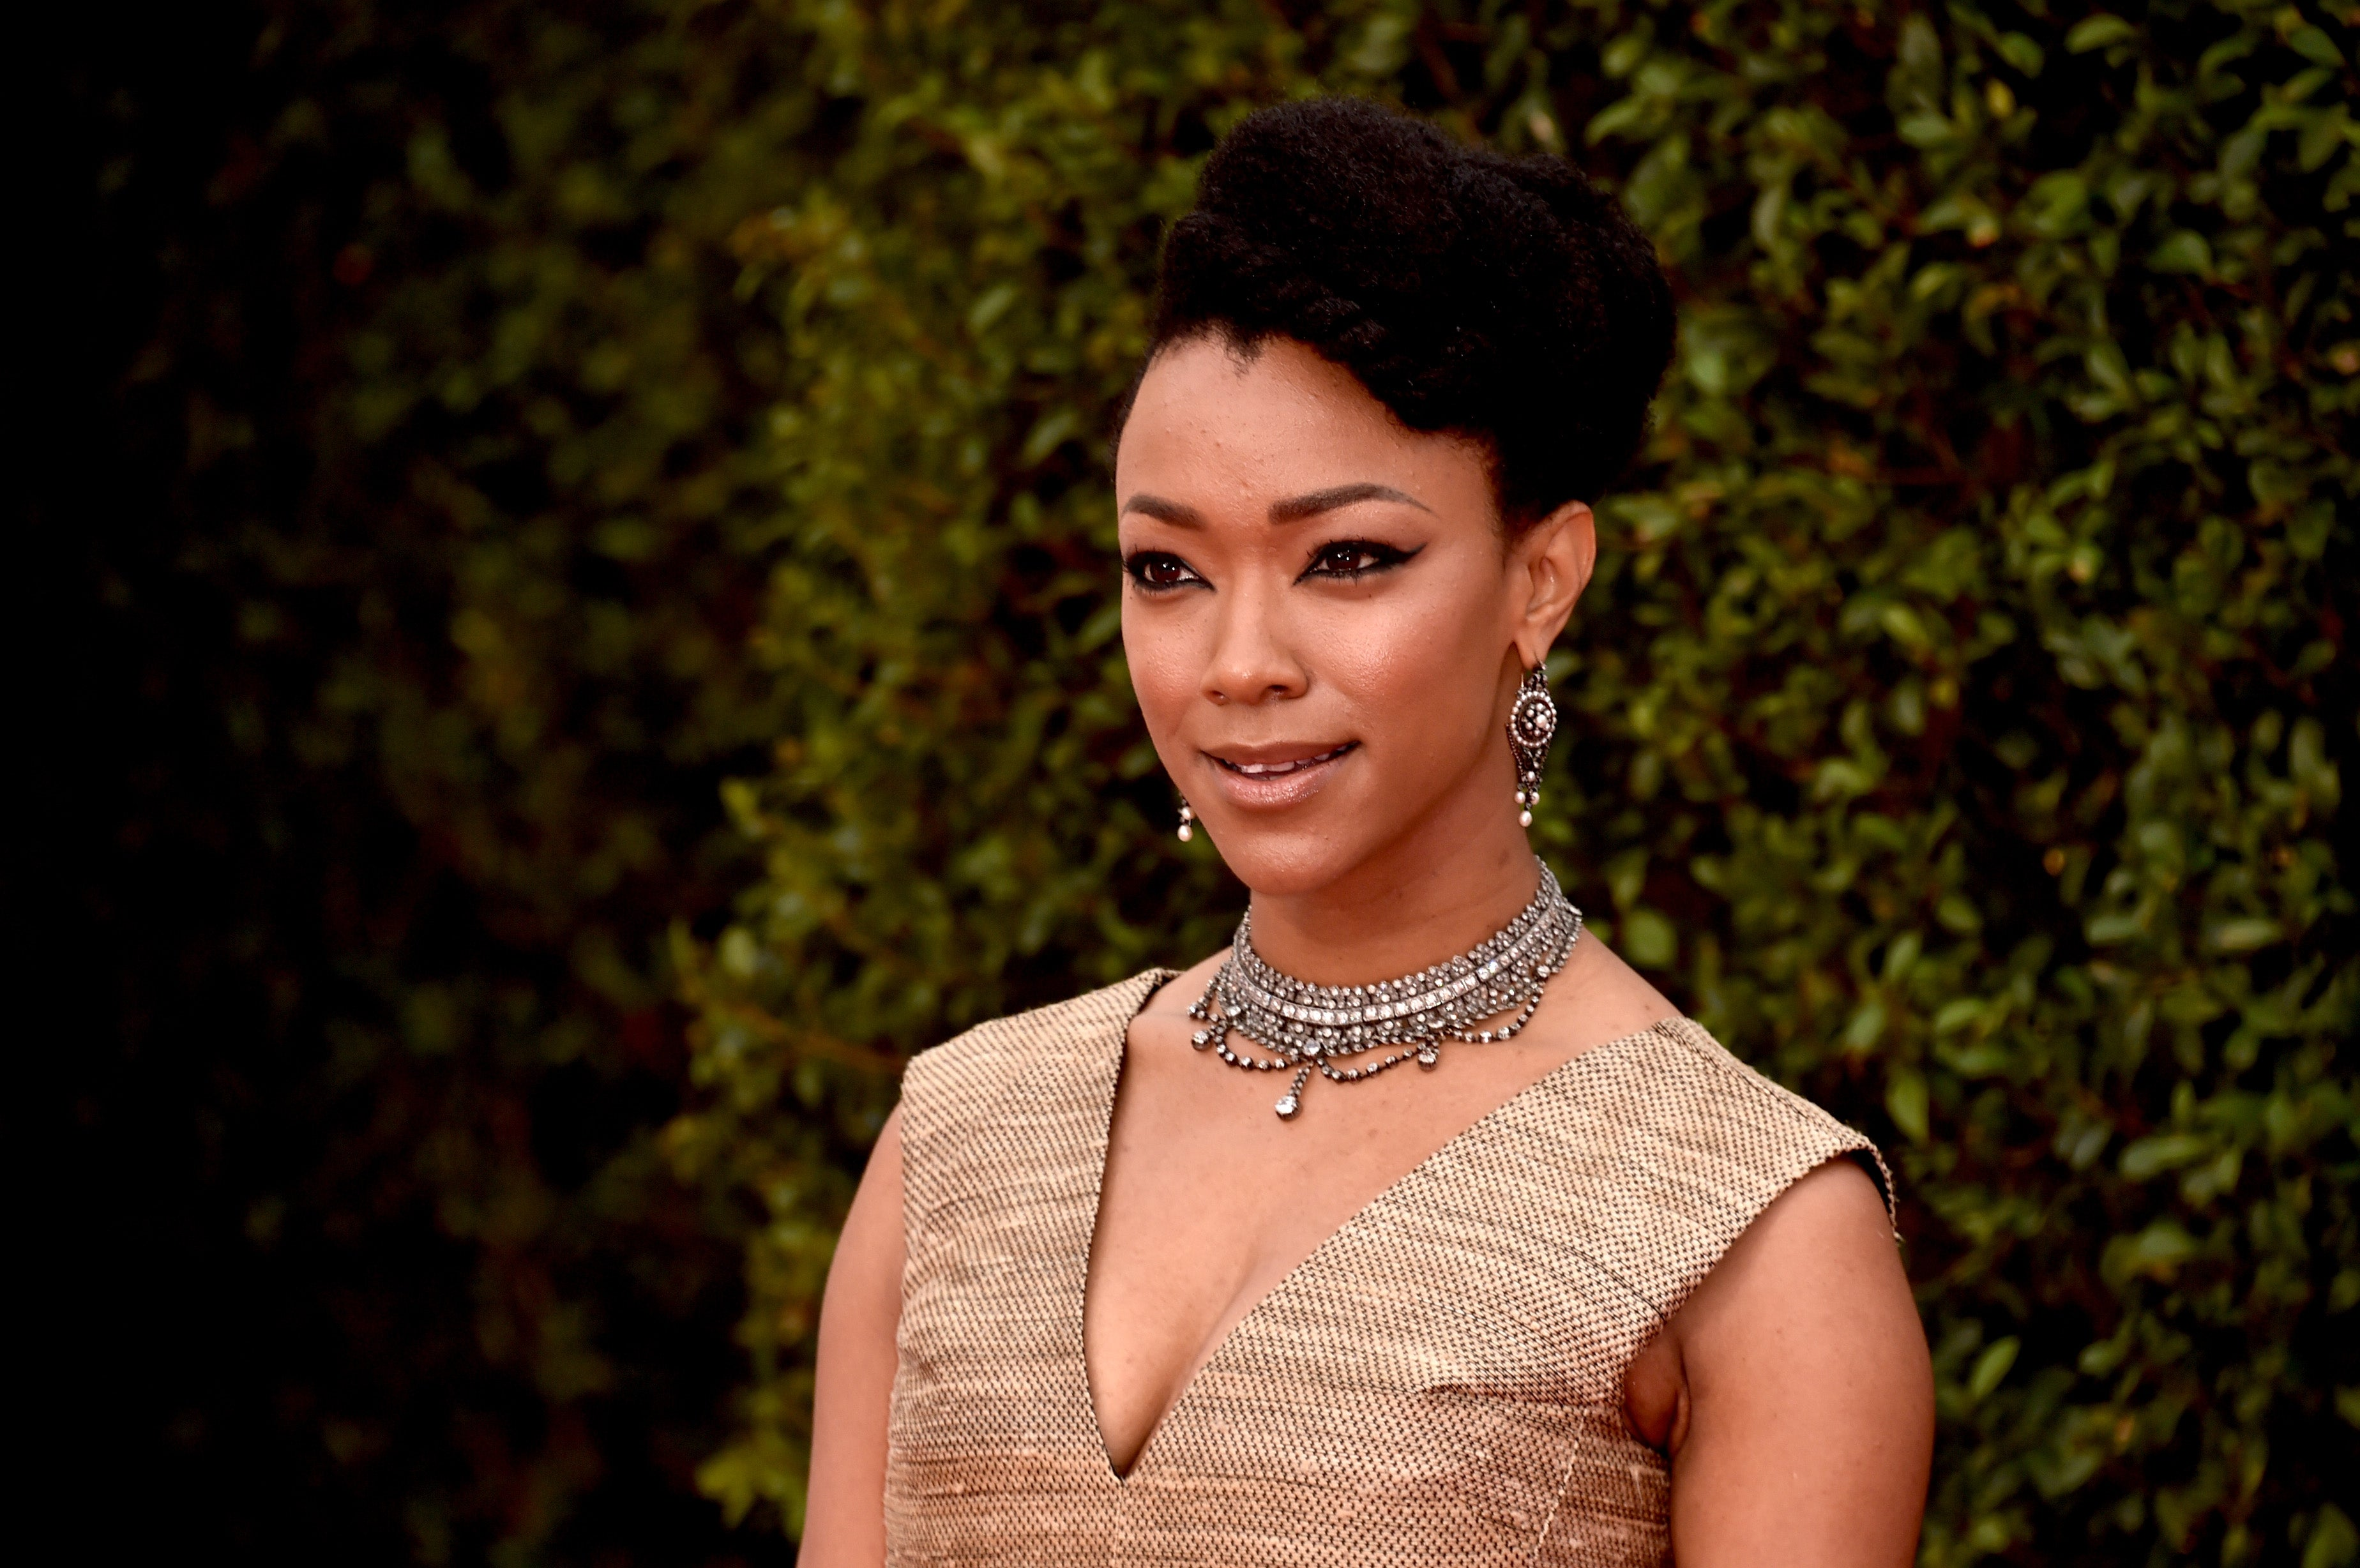 Sonequa Martin-Green For Stand Up To Cancer